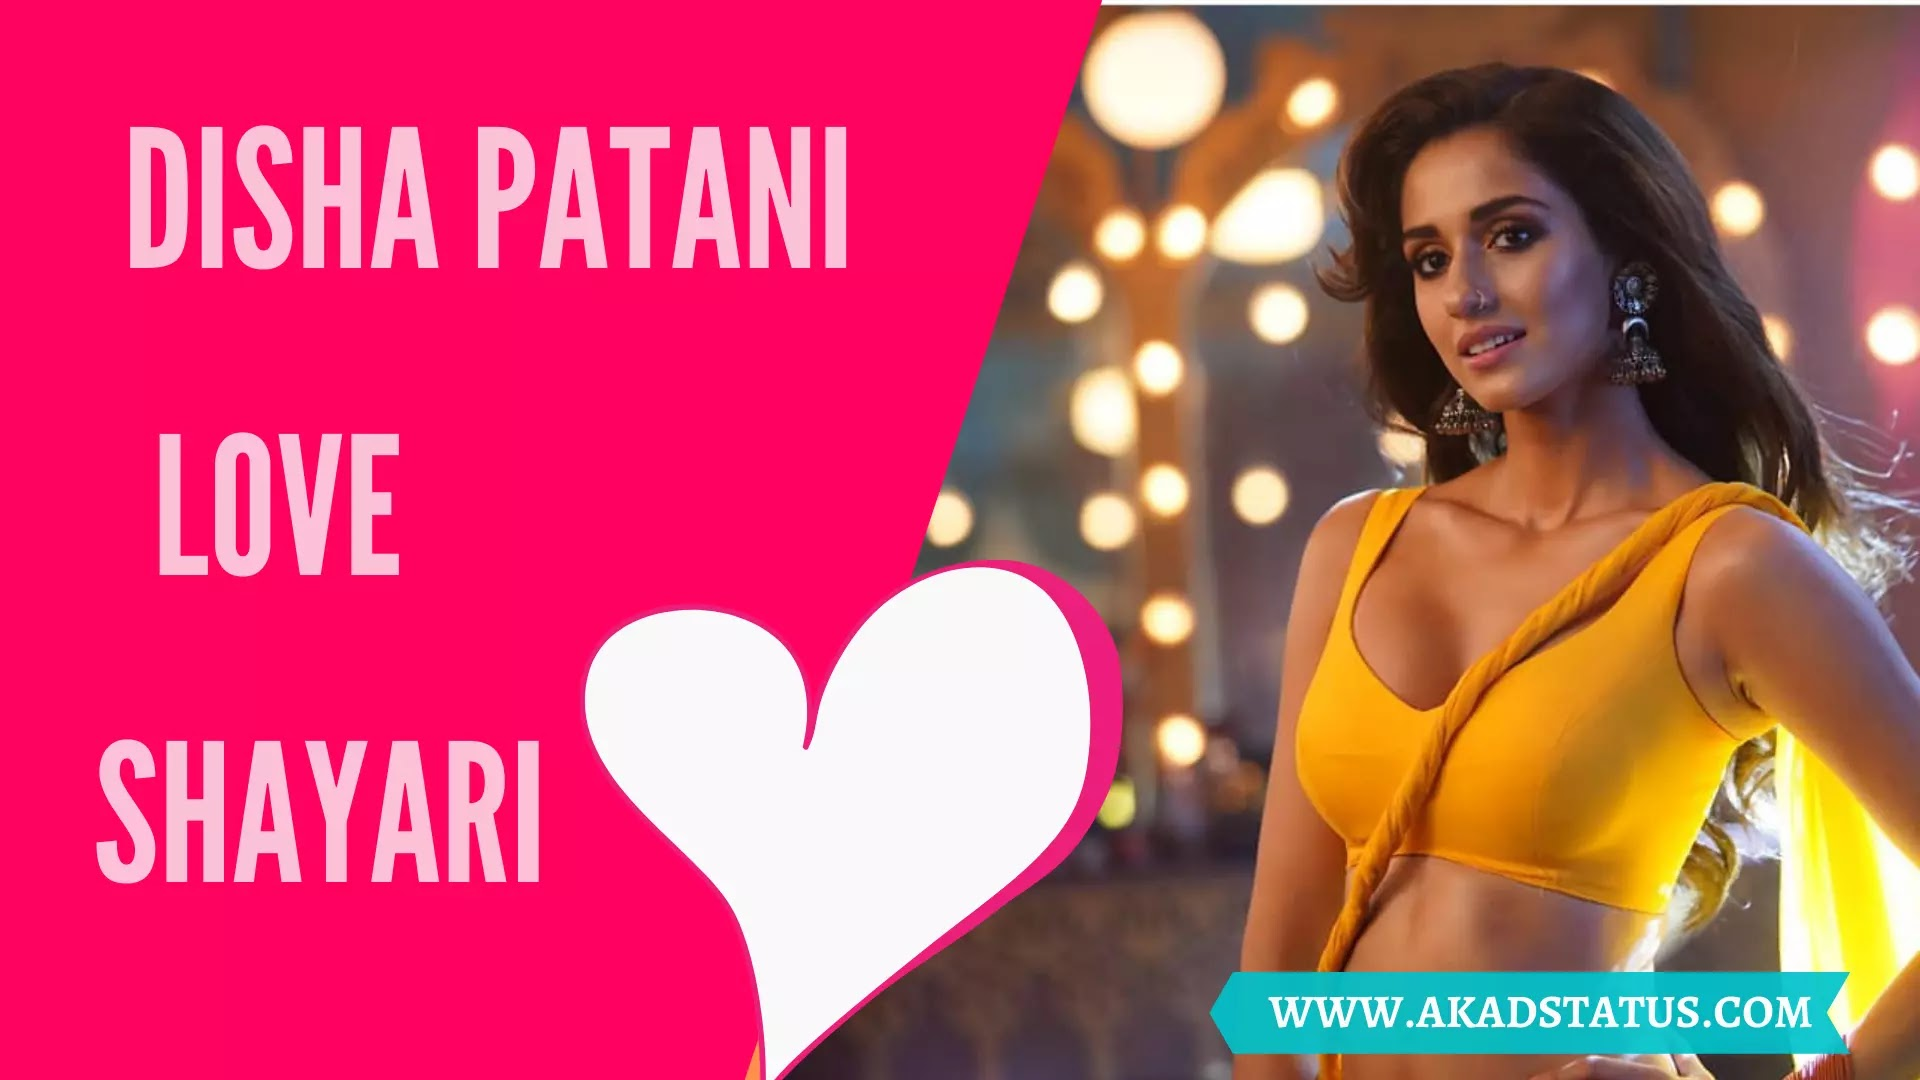 Disha Patani Shayari In Hindi, Disha Patani Shayari Pic